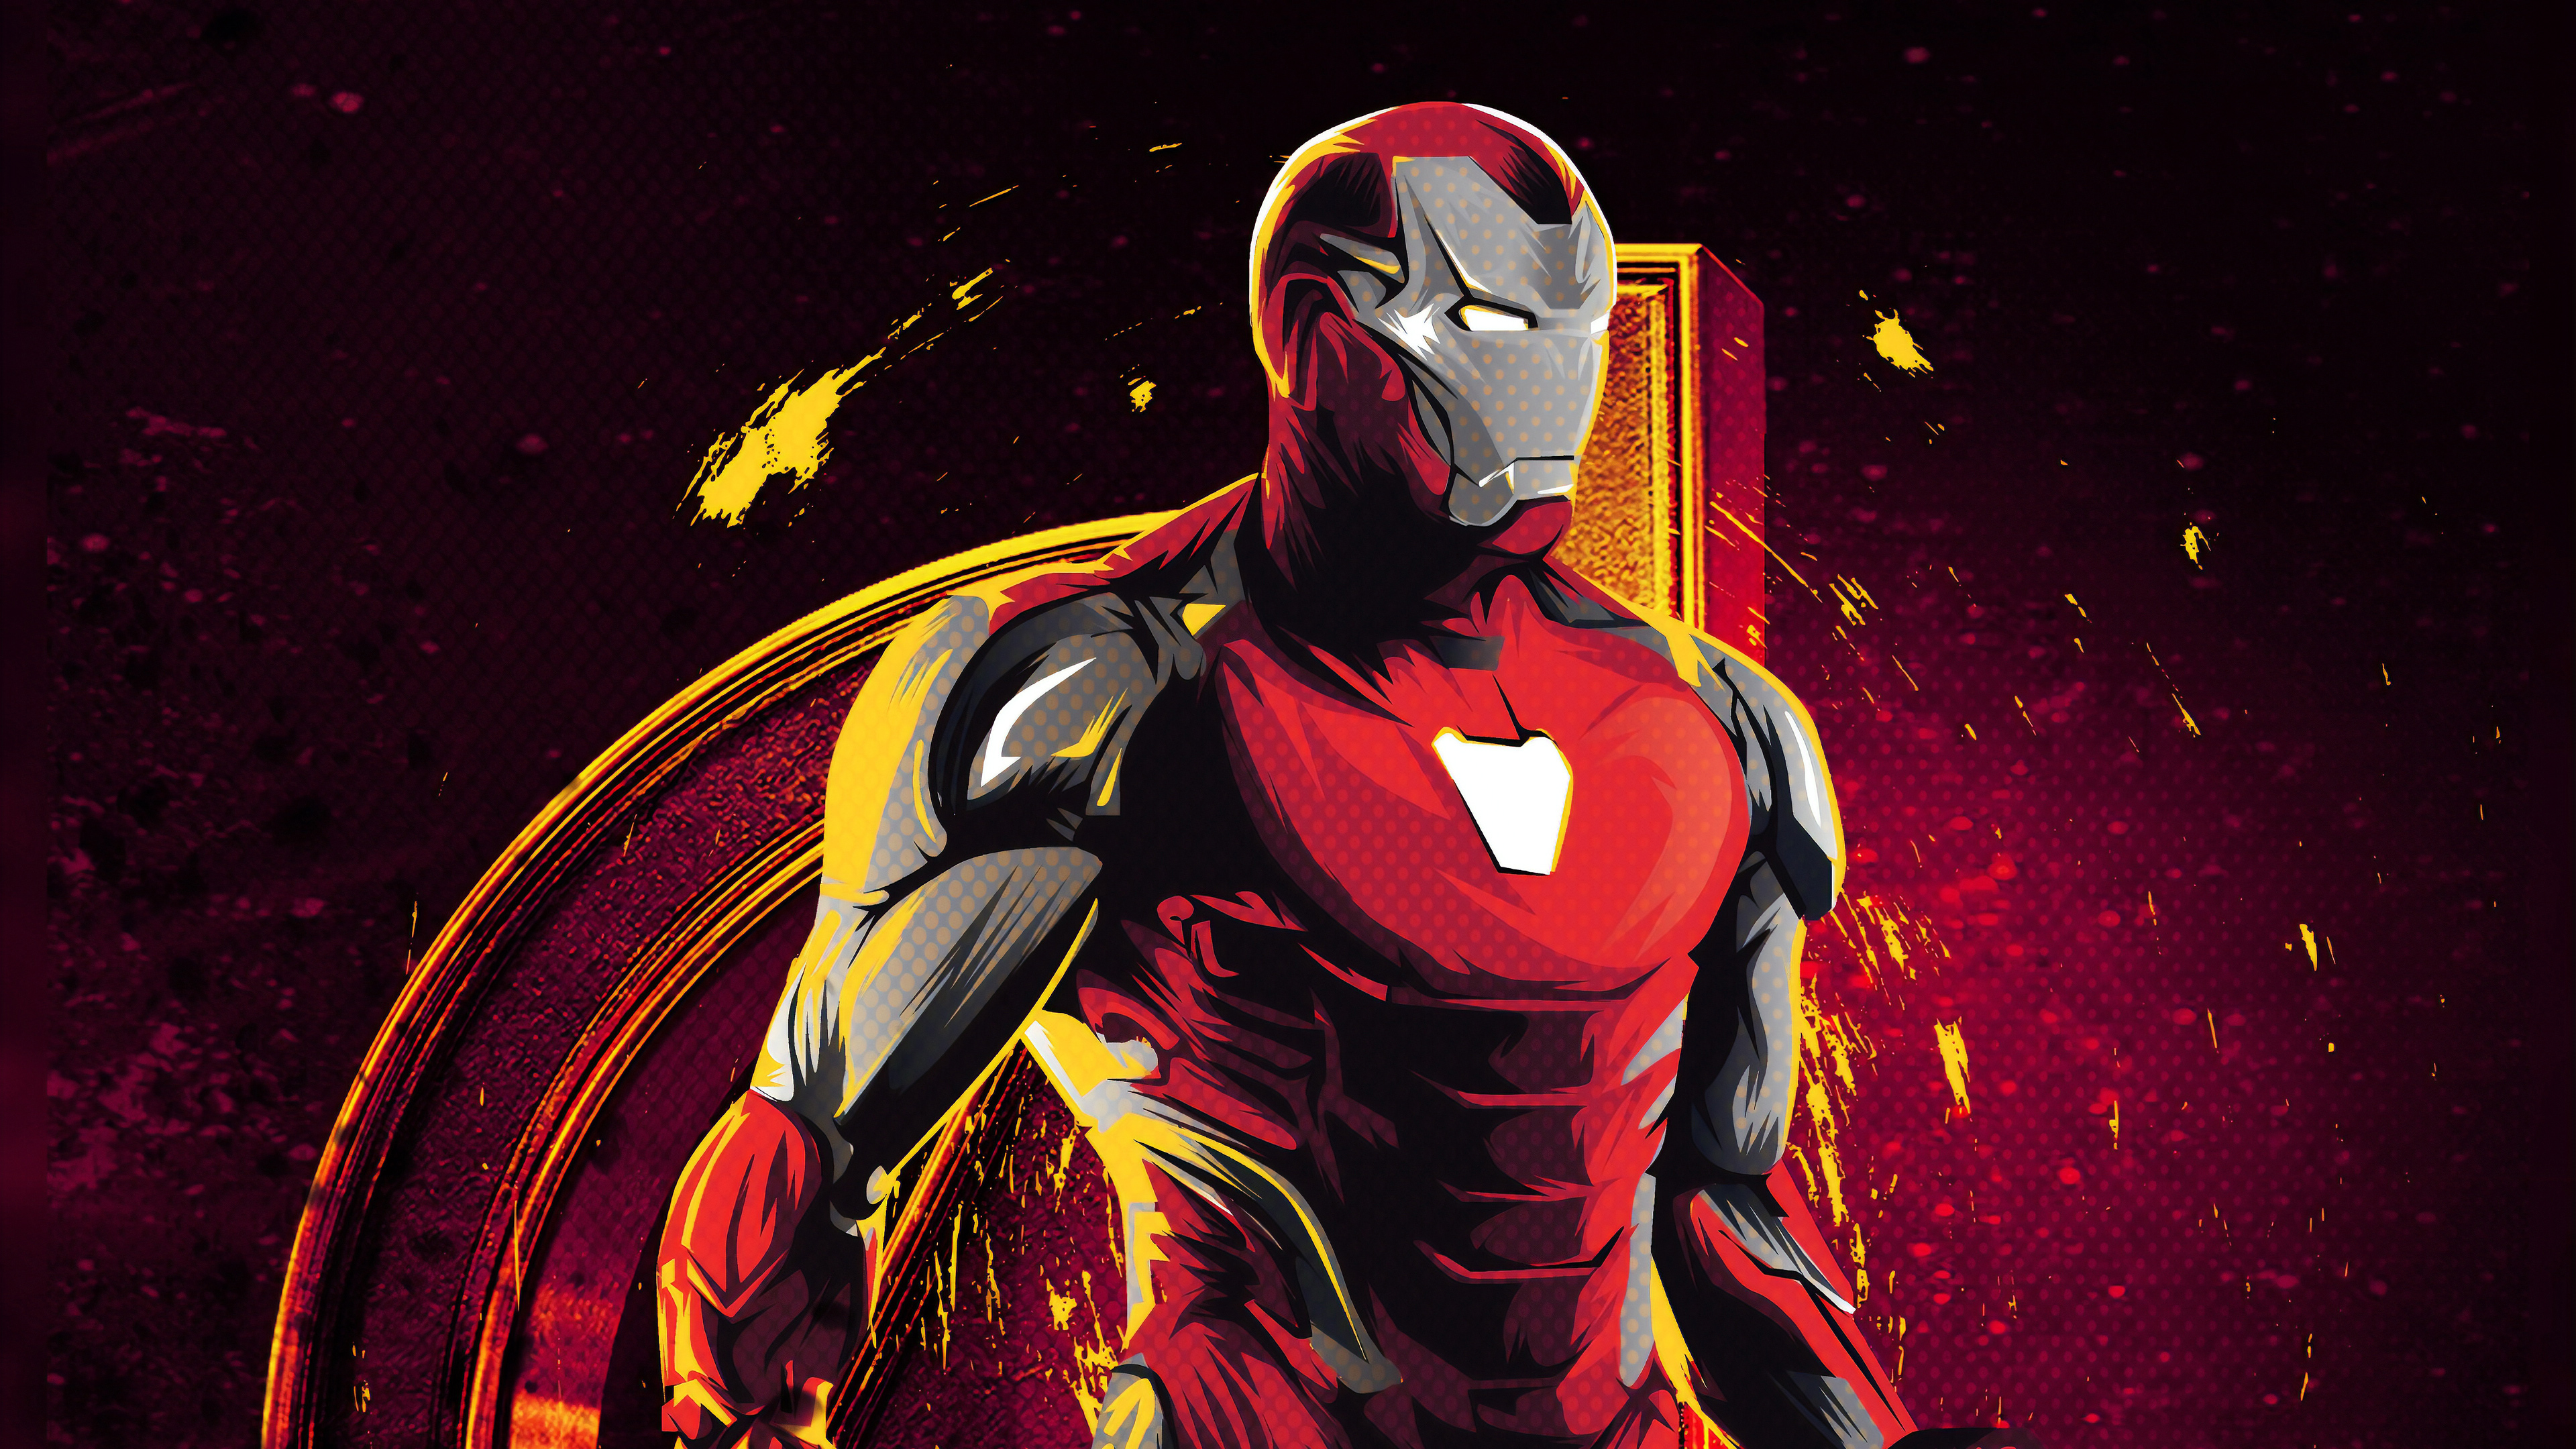 Iron Man Neon Wallpapers Posted By Ethan Sellers